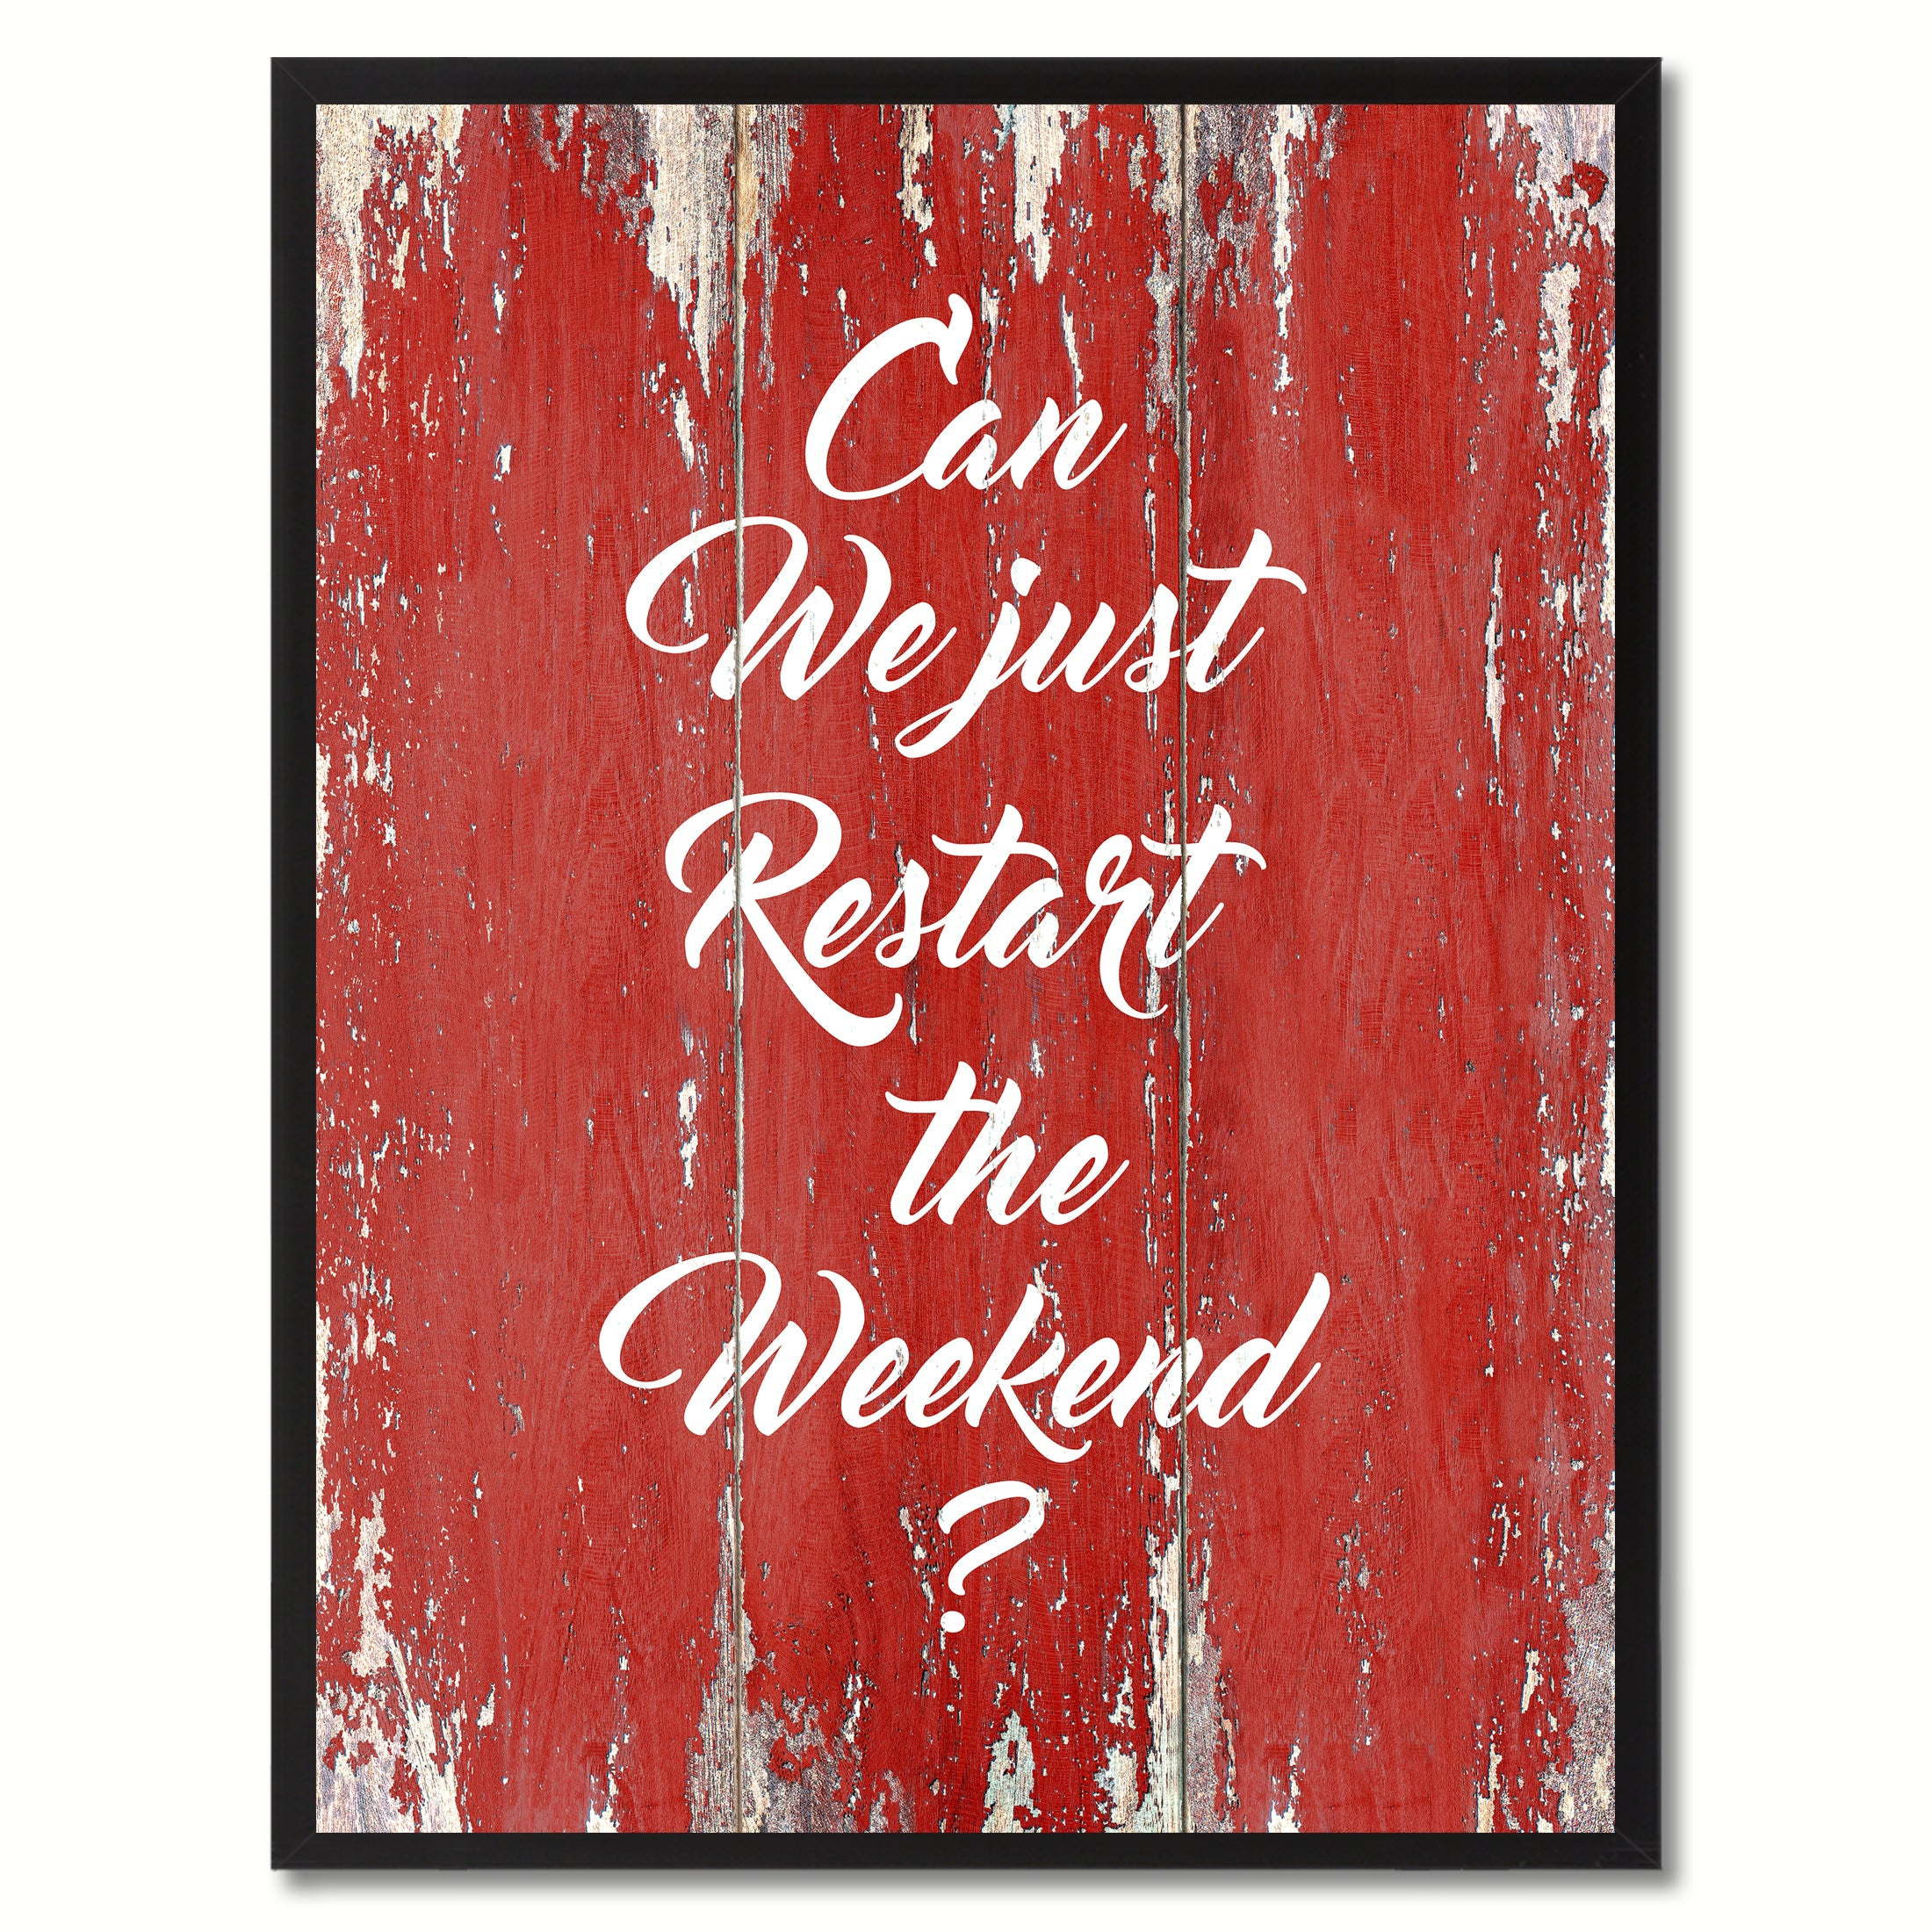 Can We Just Restart The Weekend Saying Black Framed Canvas Print Home Decor Wall Art Gifts 120310 Red